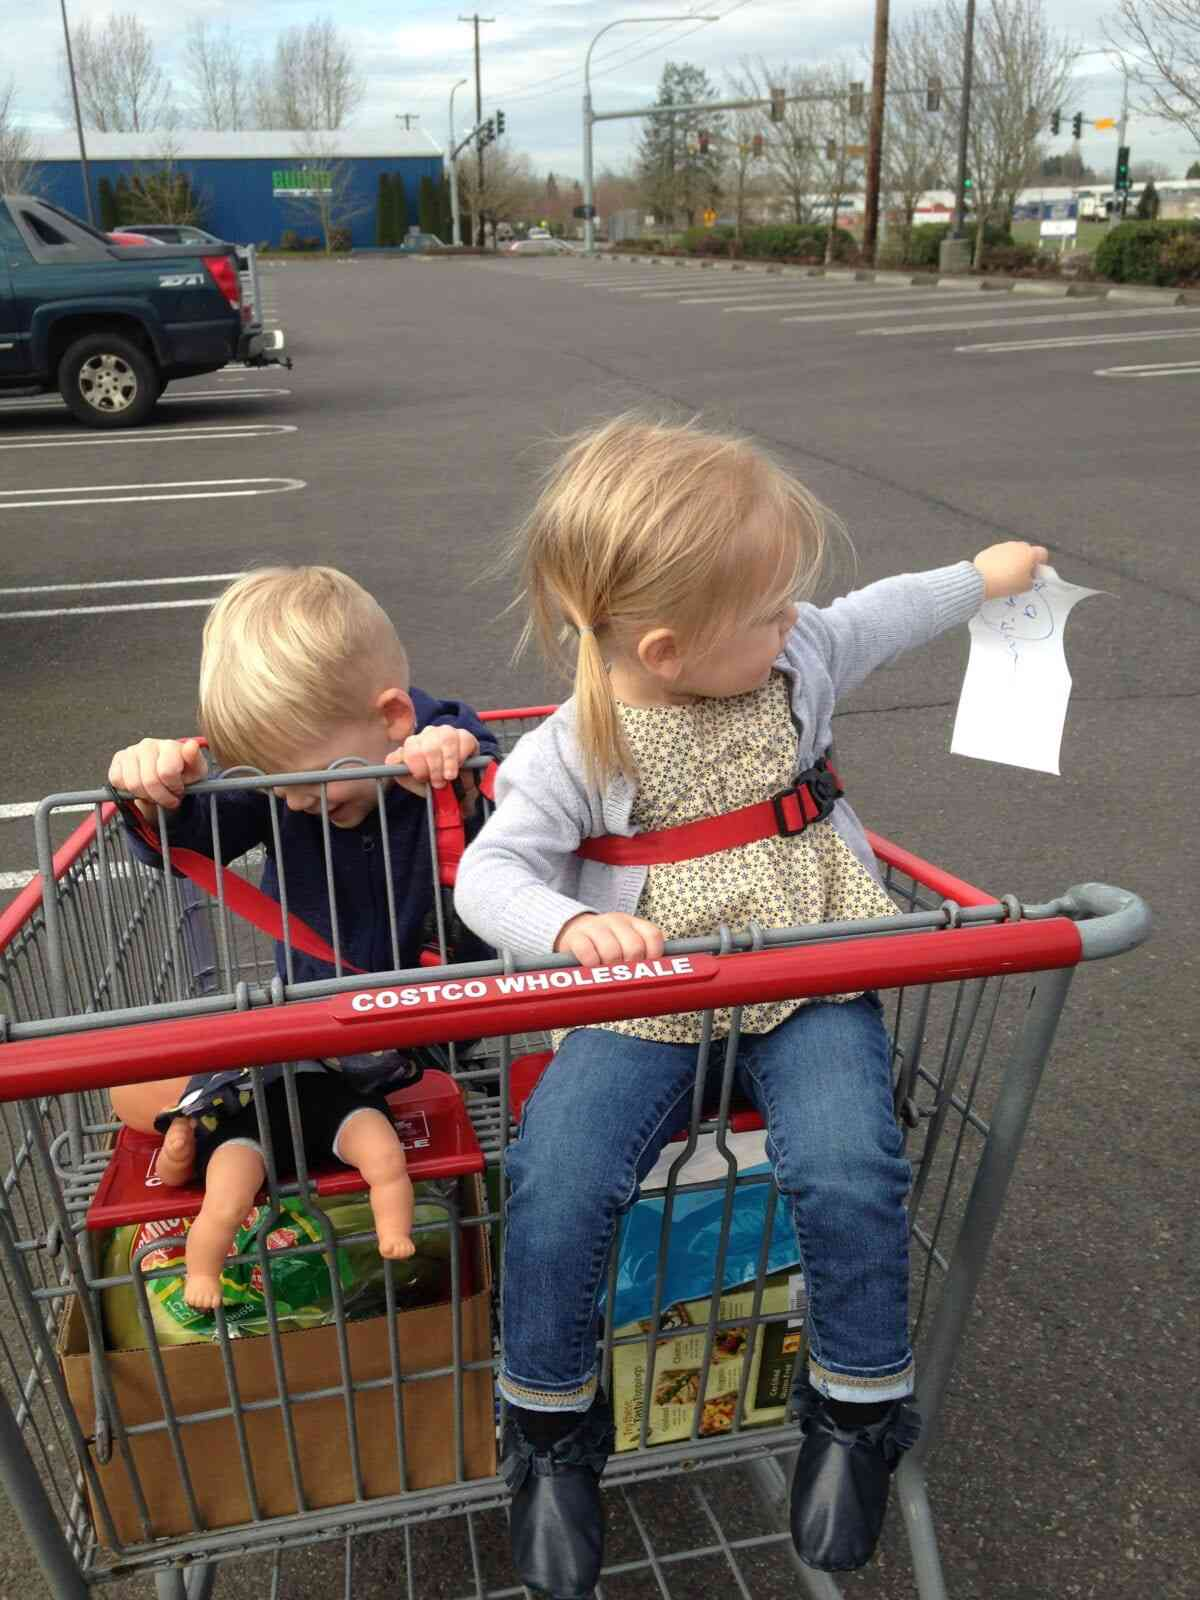 real food loving kids: give them the power of choice